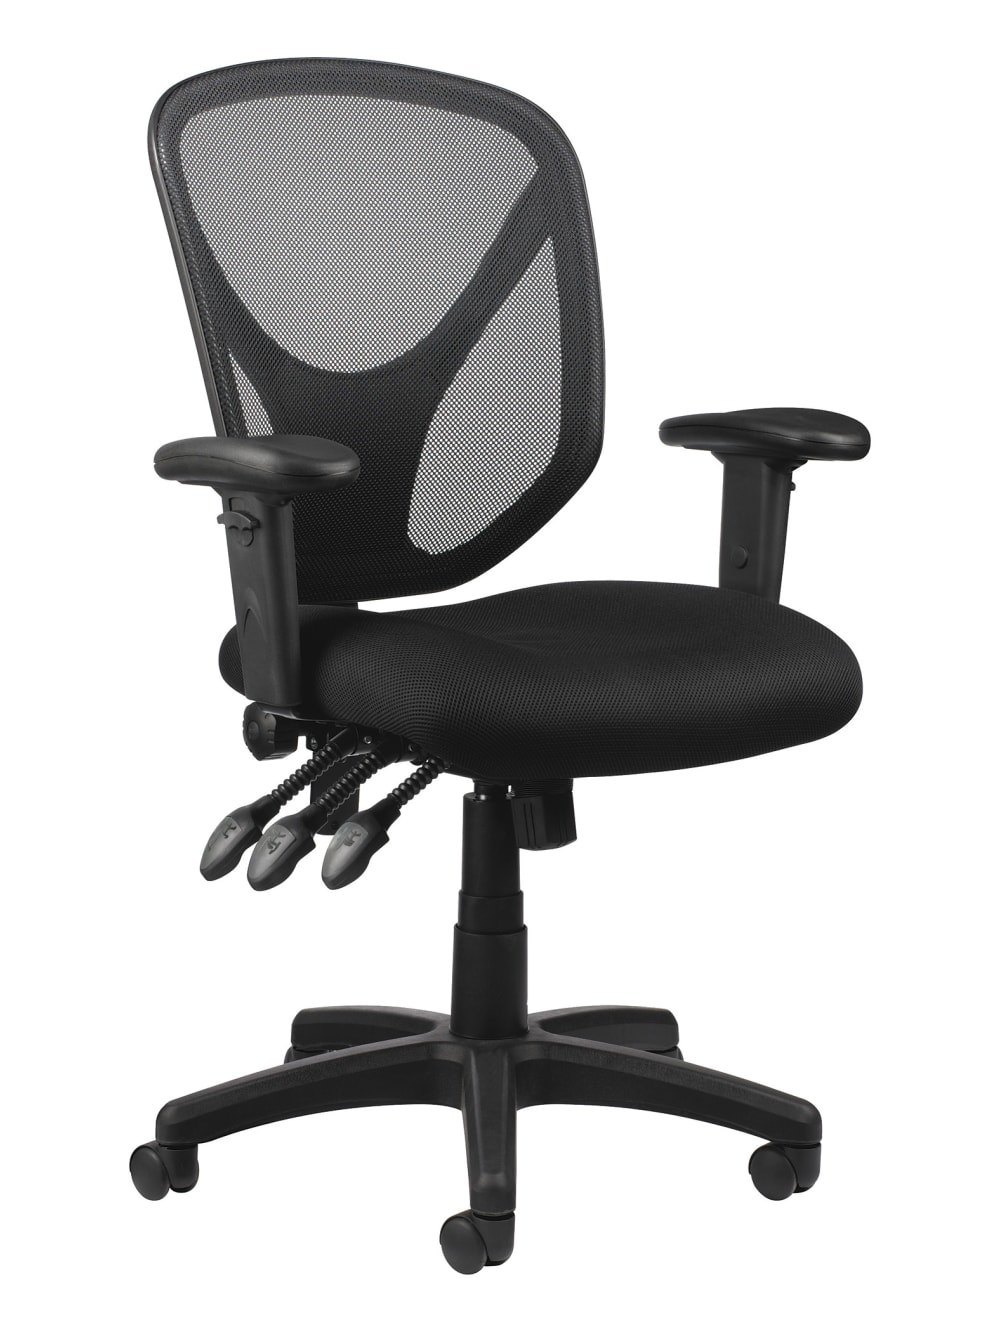 The mesh back black task chair with arm rests